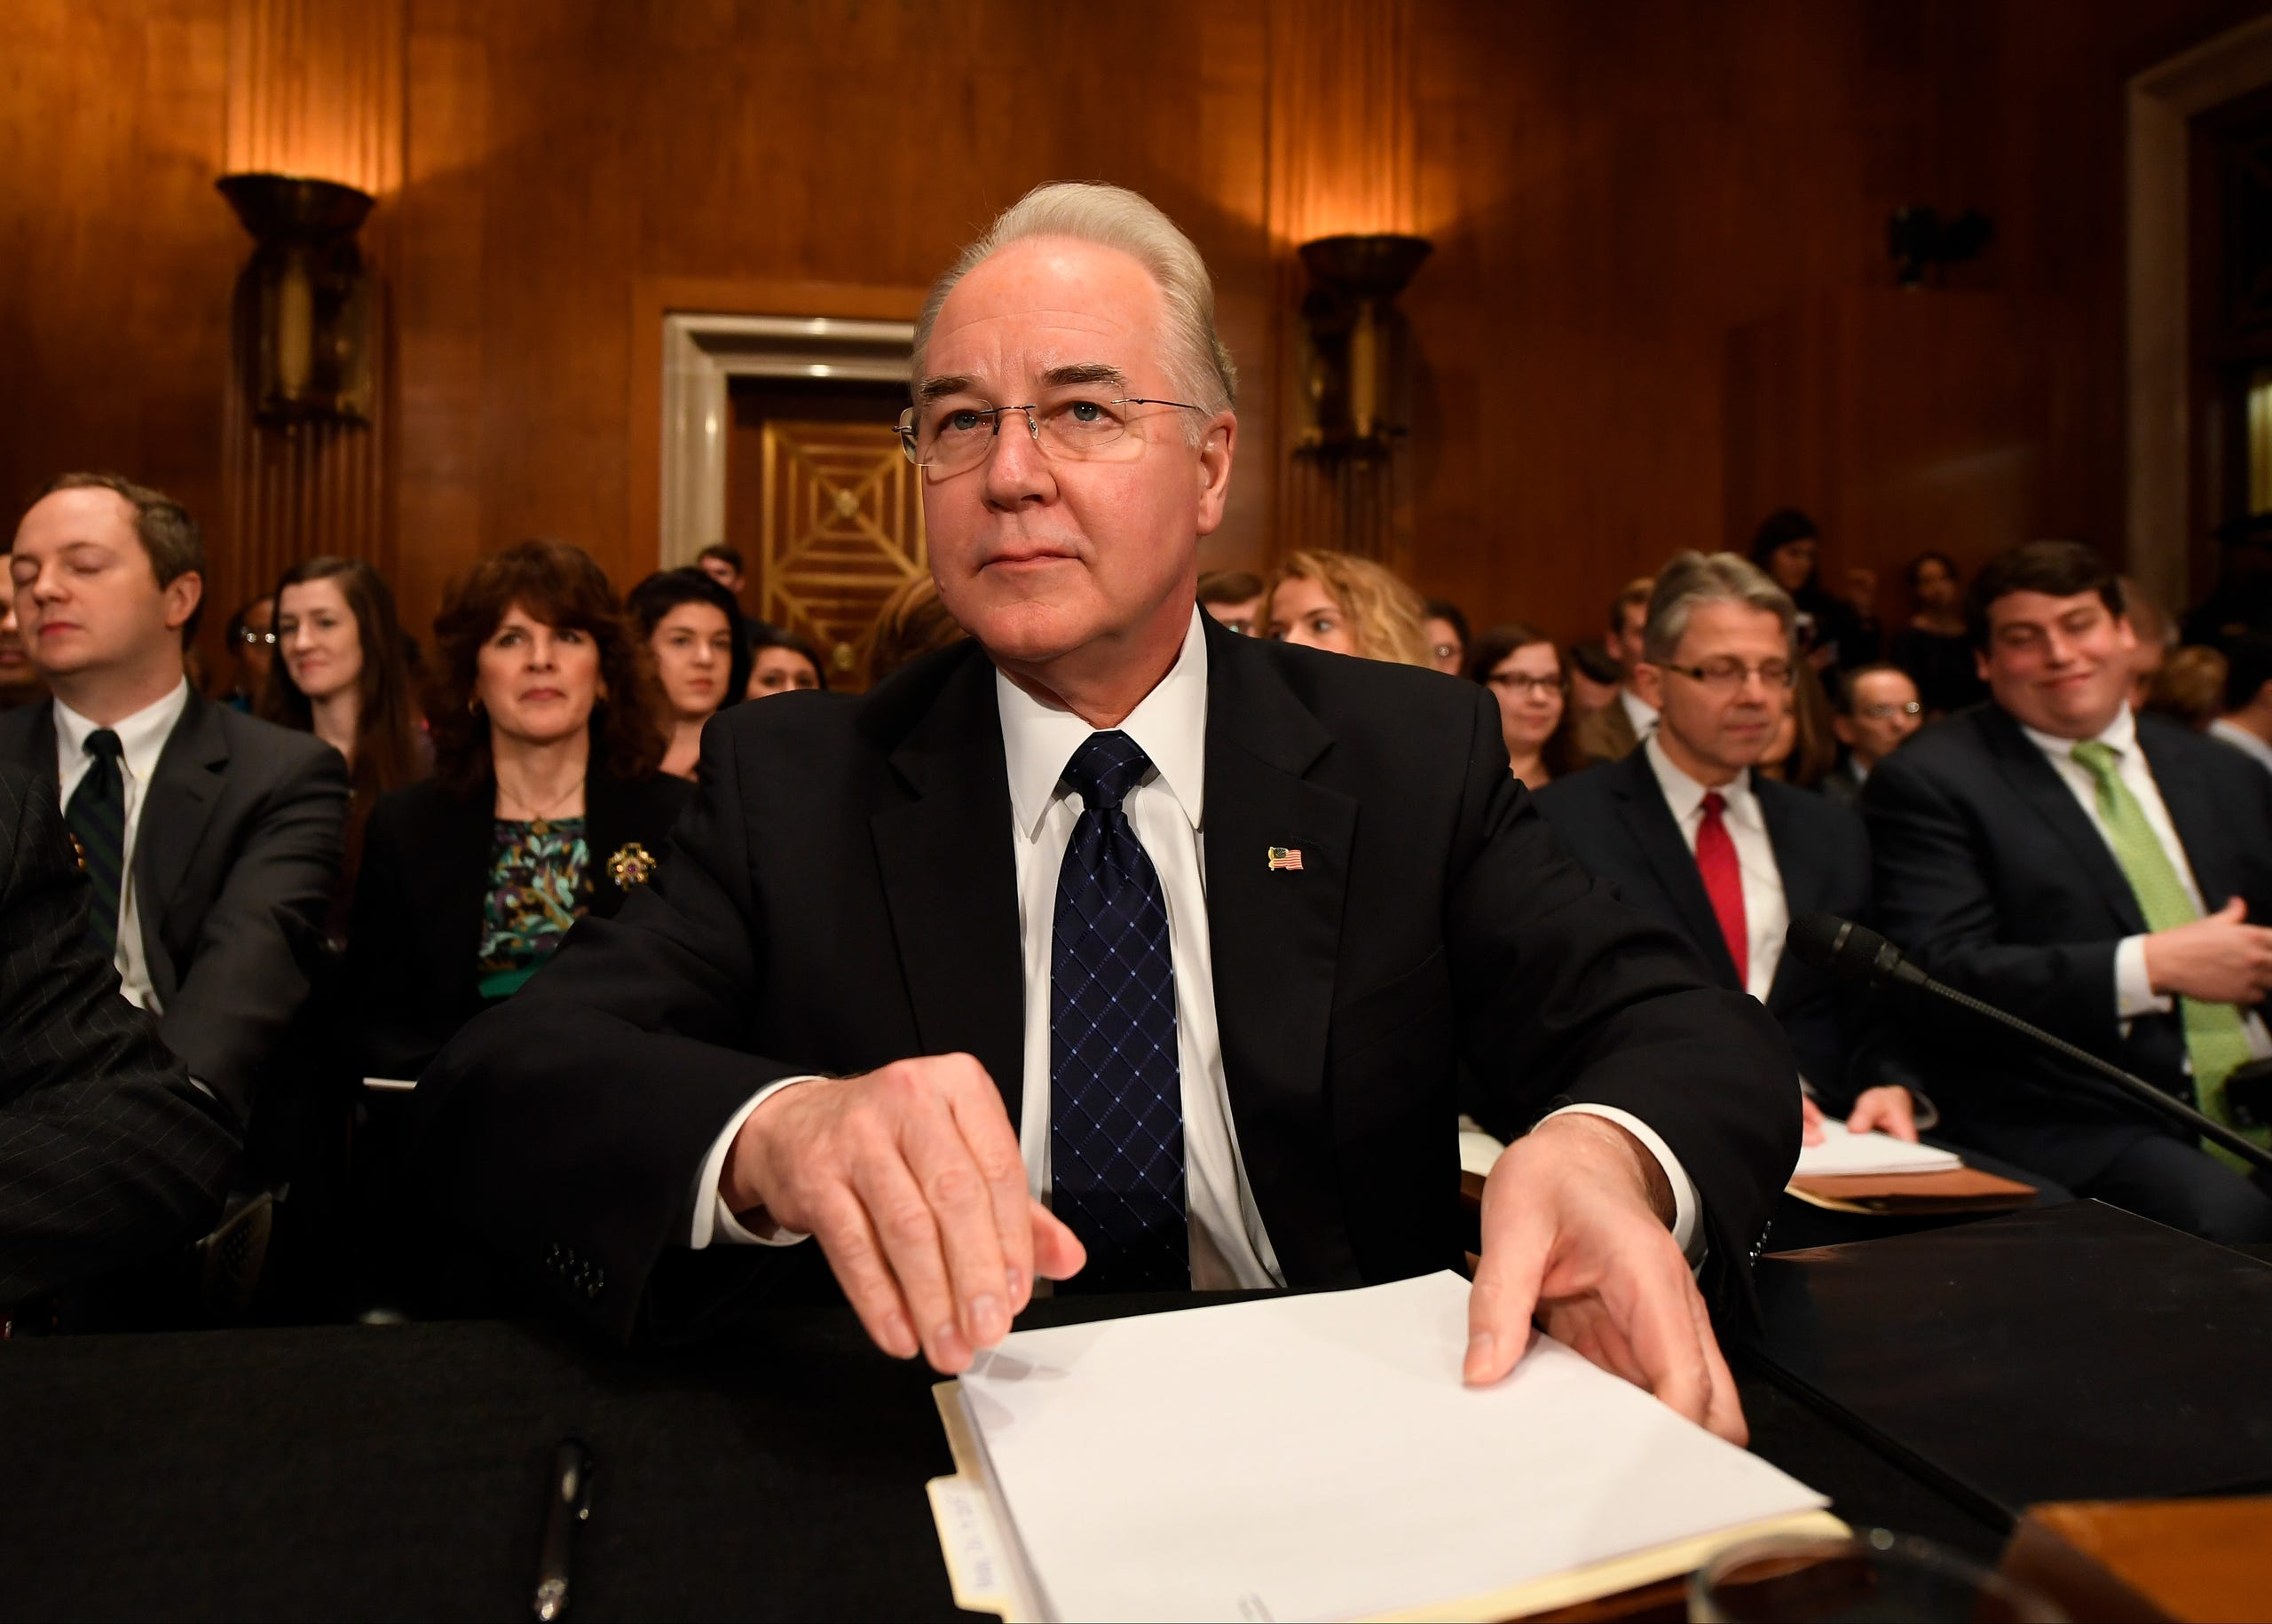 On Sept. 29, 2017 Health and Human Services Secretary Tom Price resigned after his expensive private plane rides came to light. Then Rep. Tom Price, is seen on Jan 18, 2017, during a confirmation hearing before the Senate Foreign Relations Committee.